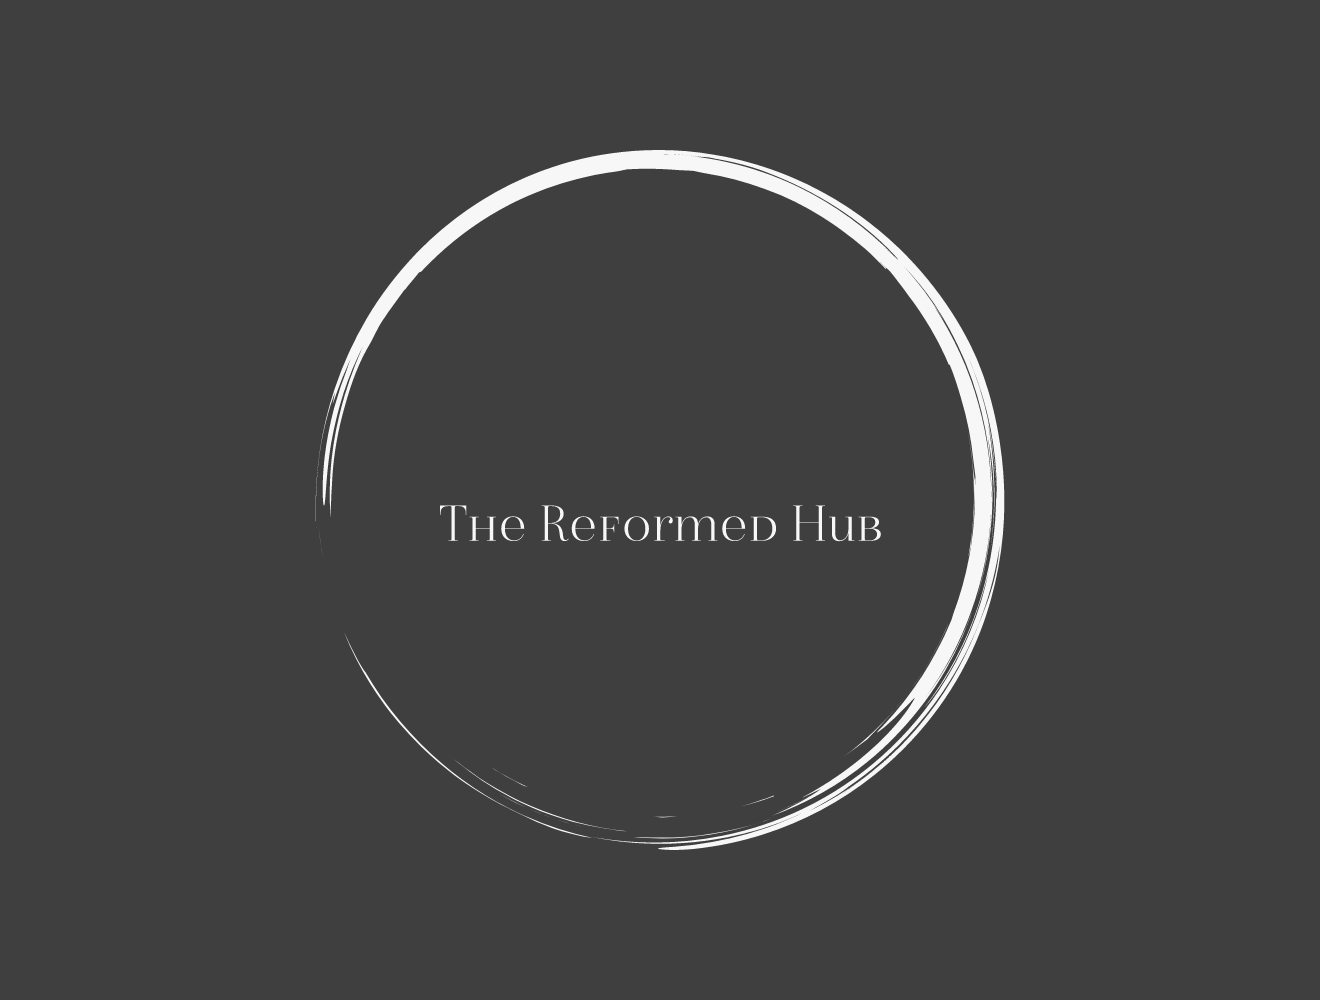 The Reformed Hub